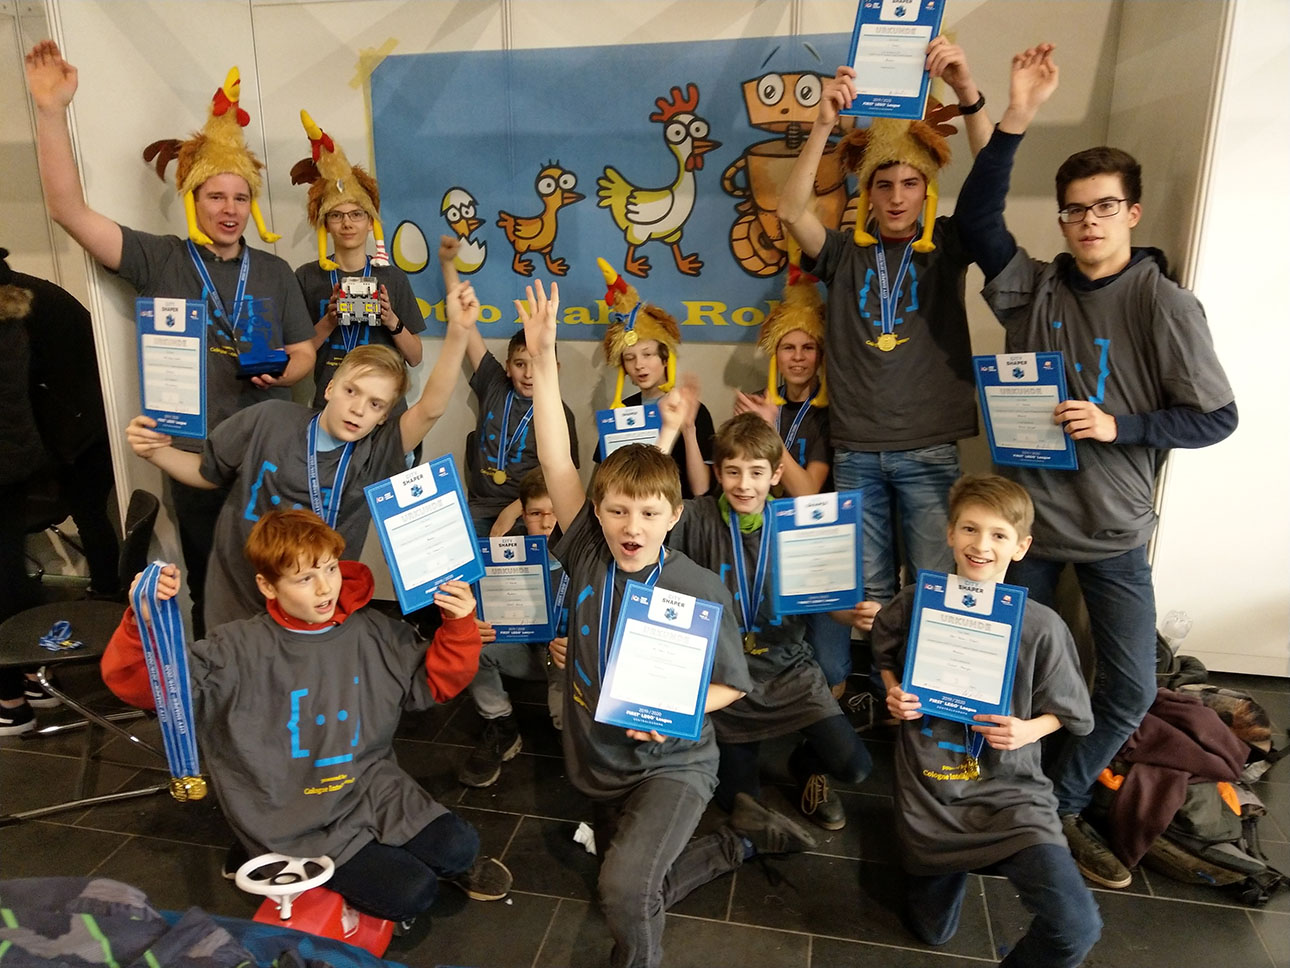 First Lego League Teams bei Wettkampf erfolgreich